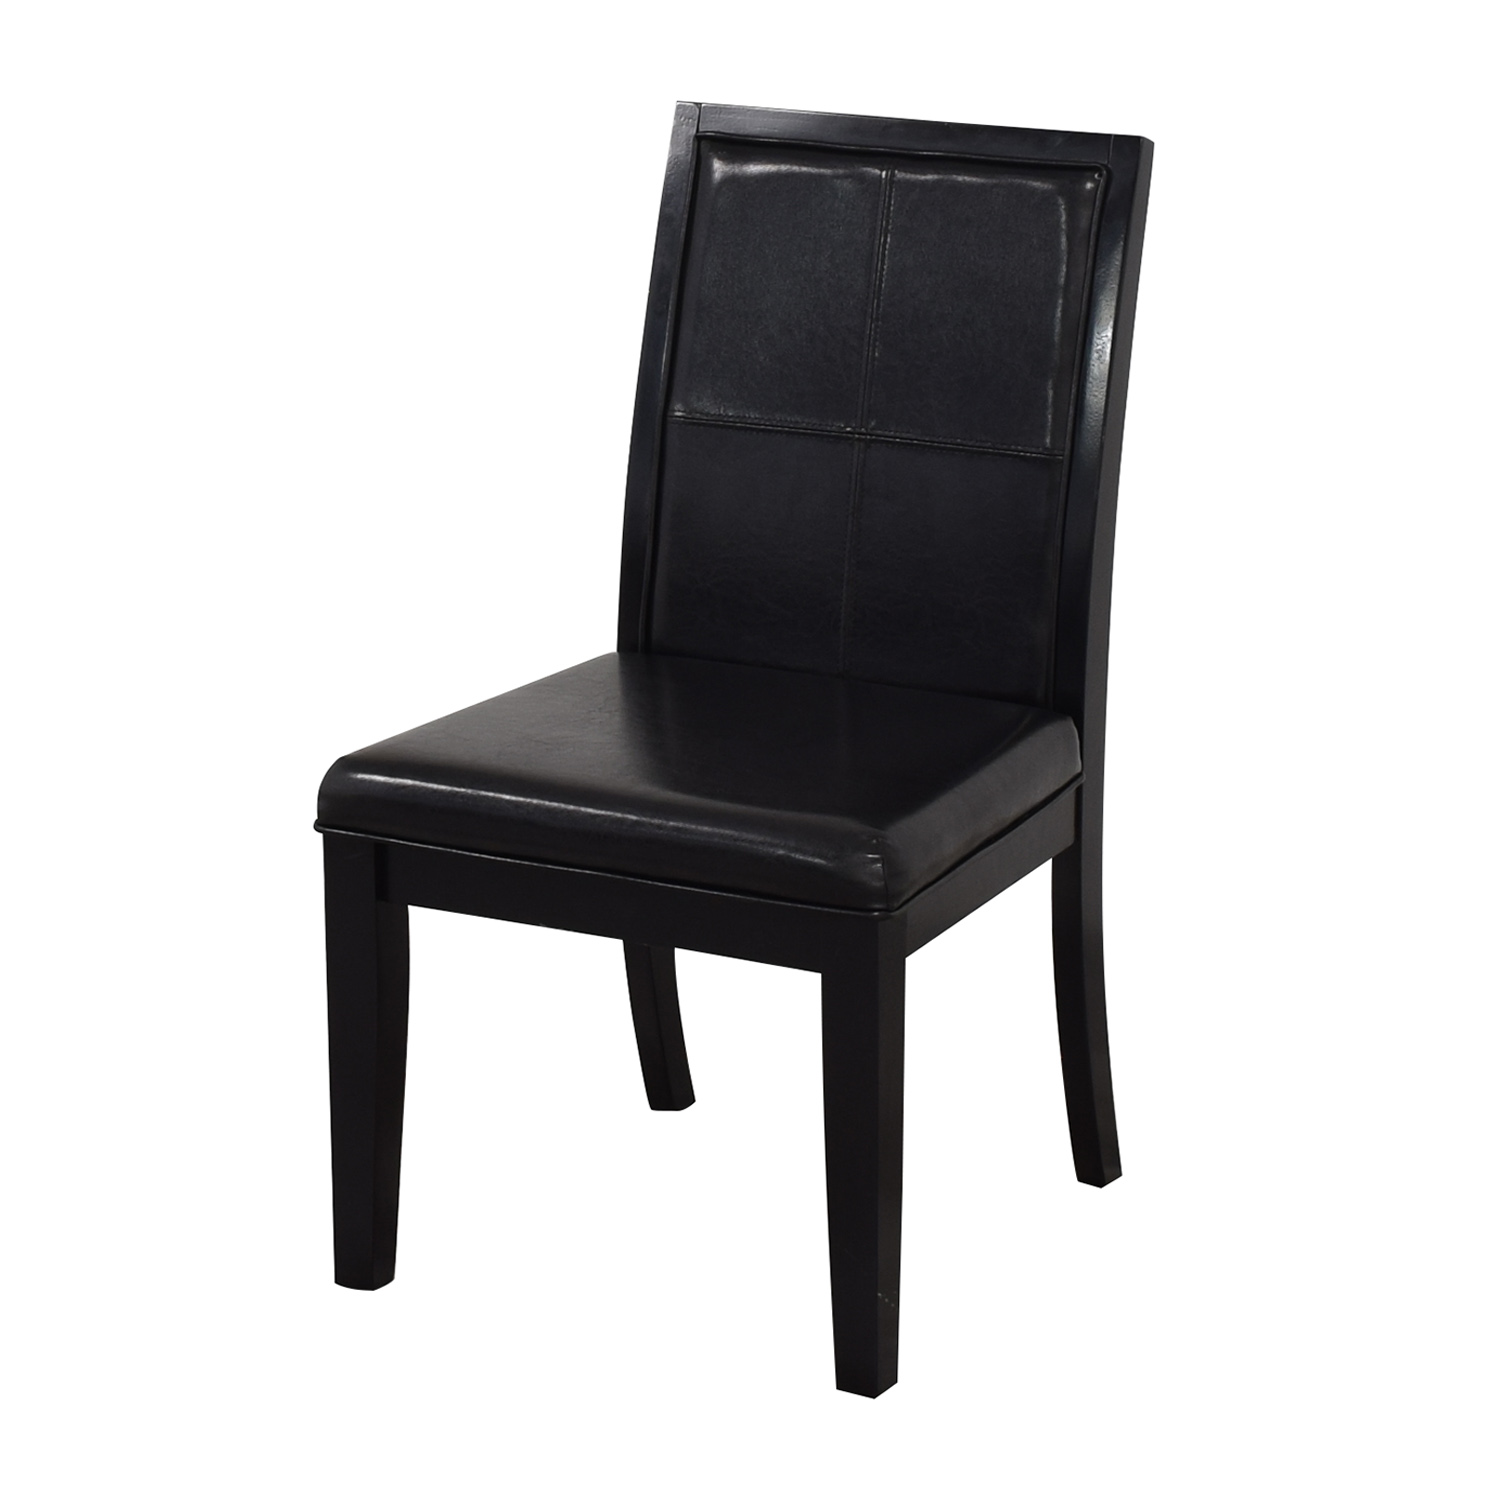 Calmart International Calmart International Dining Chairs